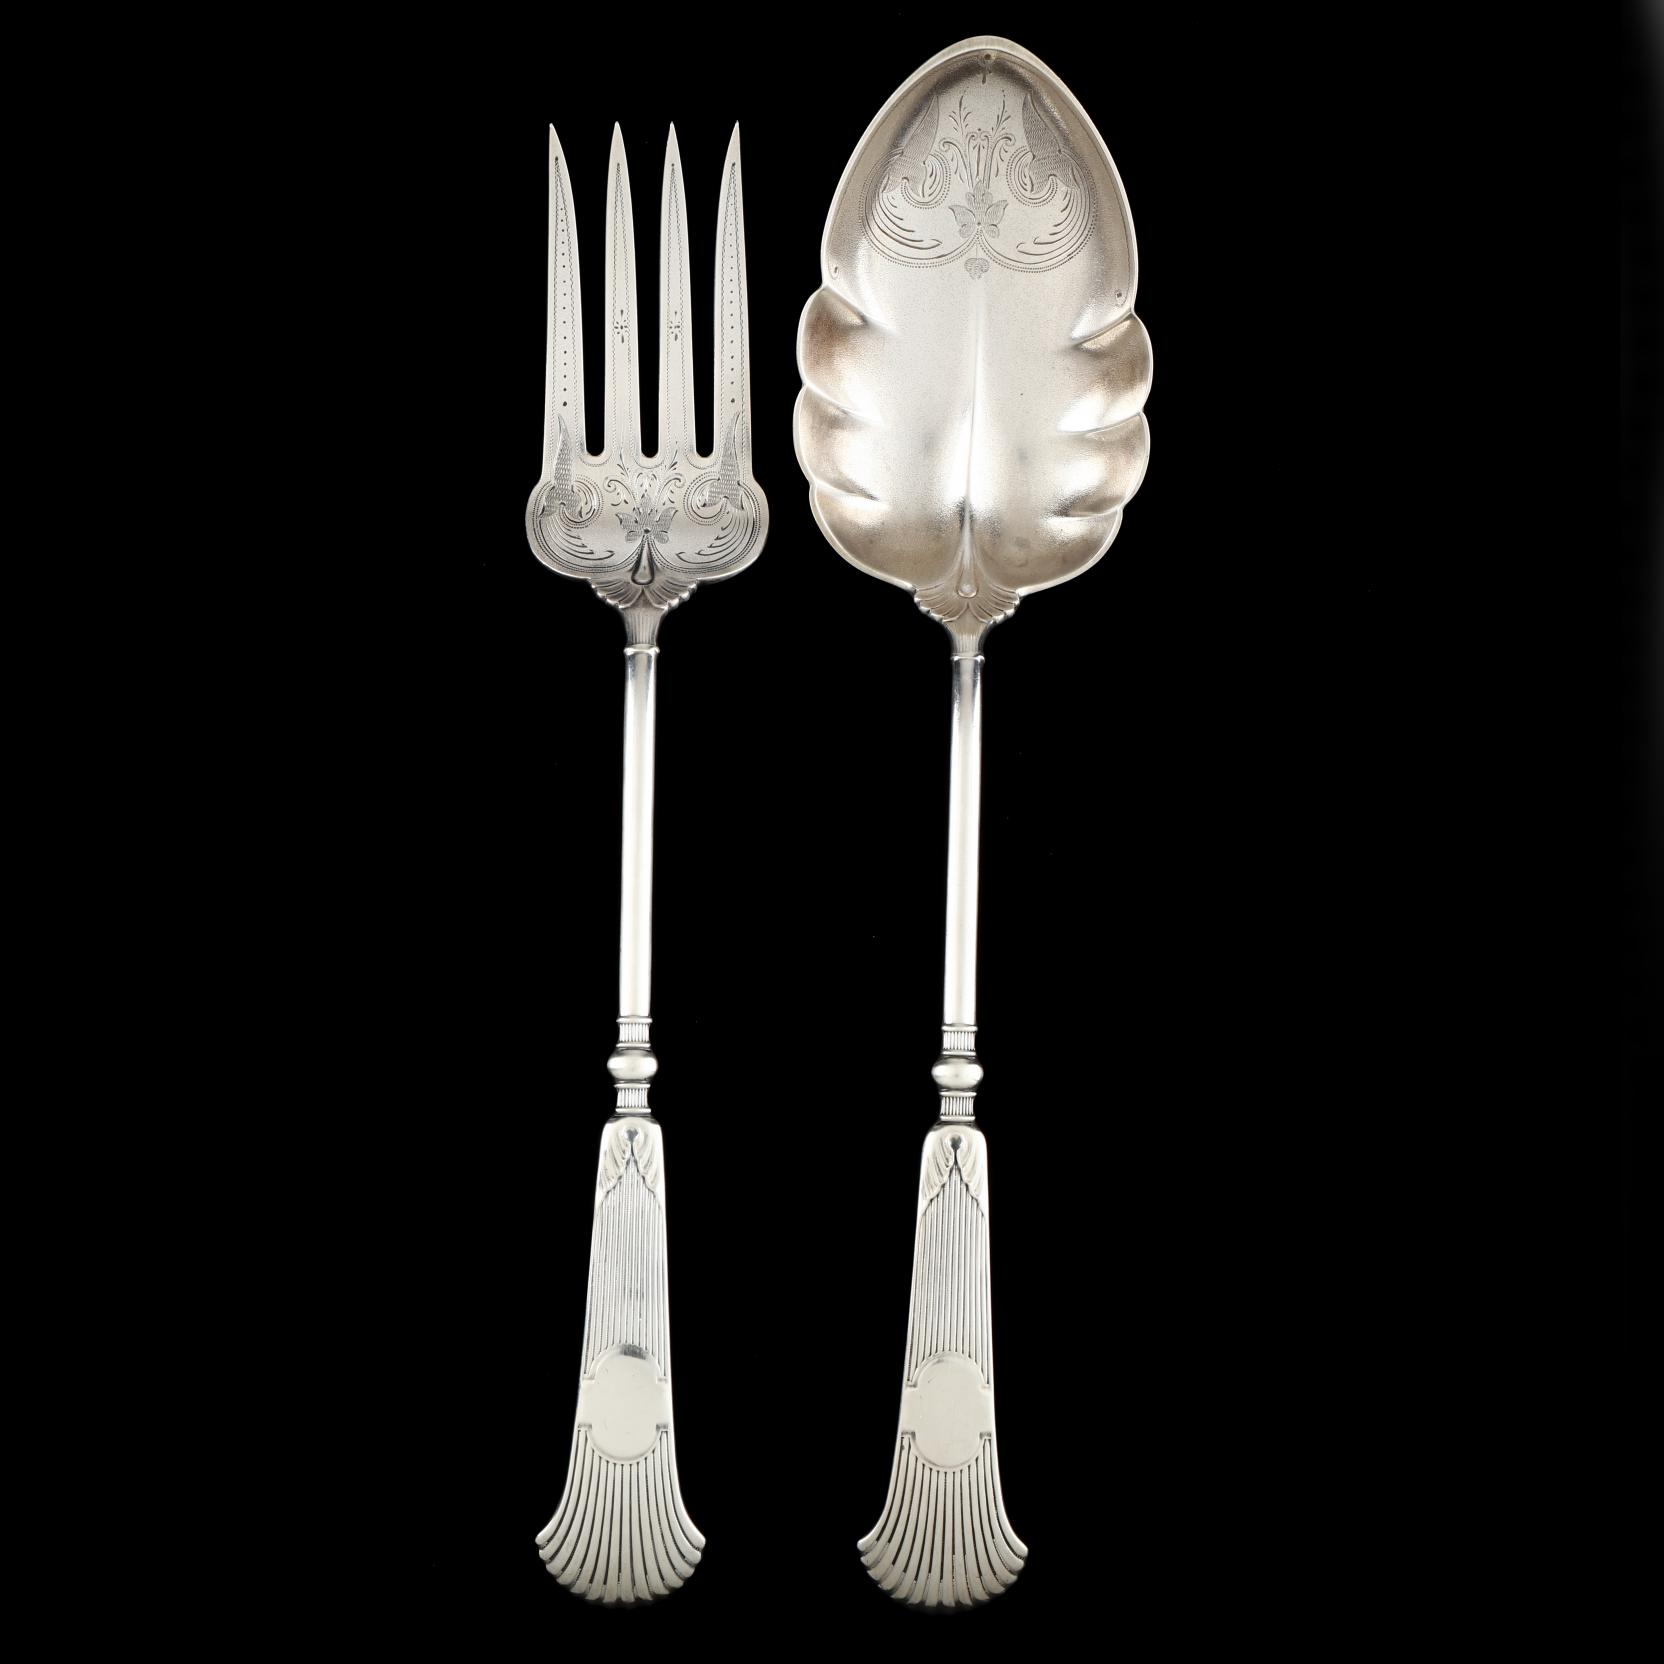 pair-of-antique-sterling-silver-servers